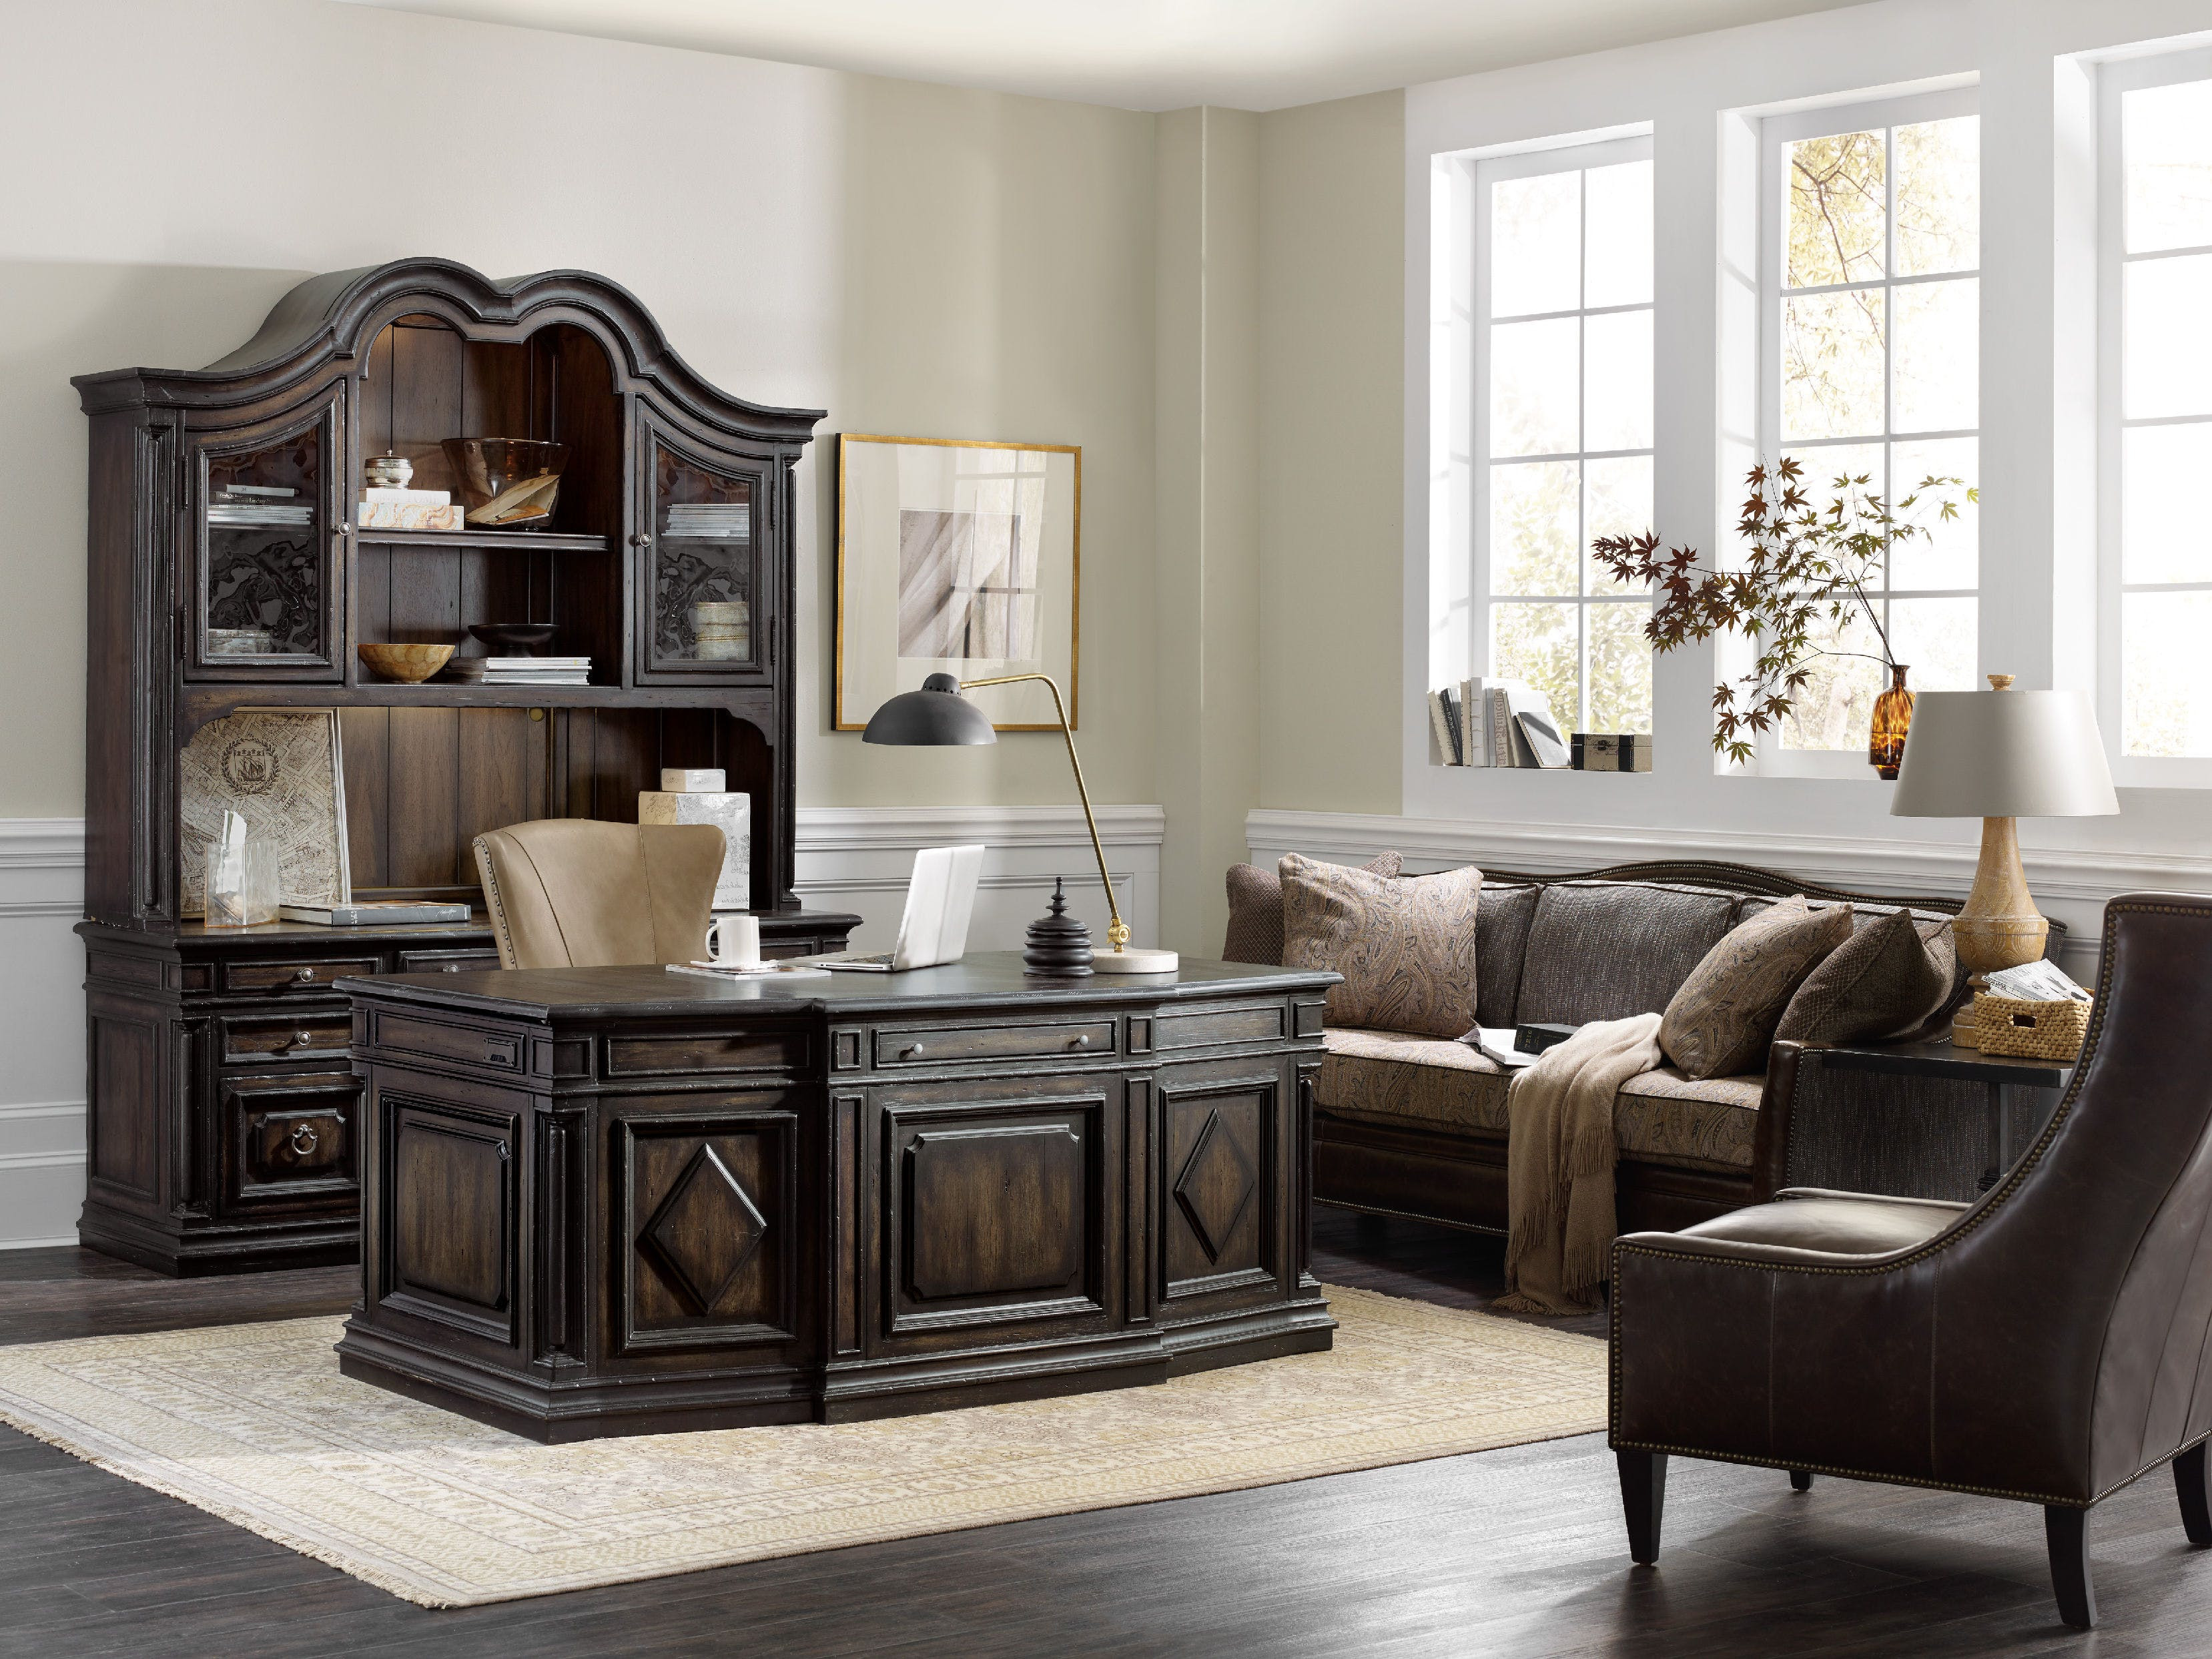 Best ideas about Hooker Office Furniture . Save or Pin Hooker Furniture Home fice Auberose Executive Desk 1595 Now.